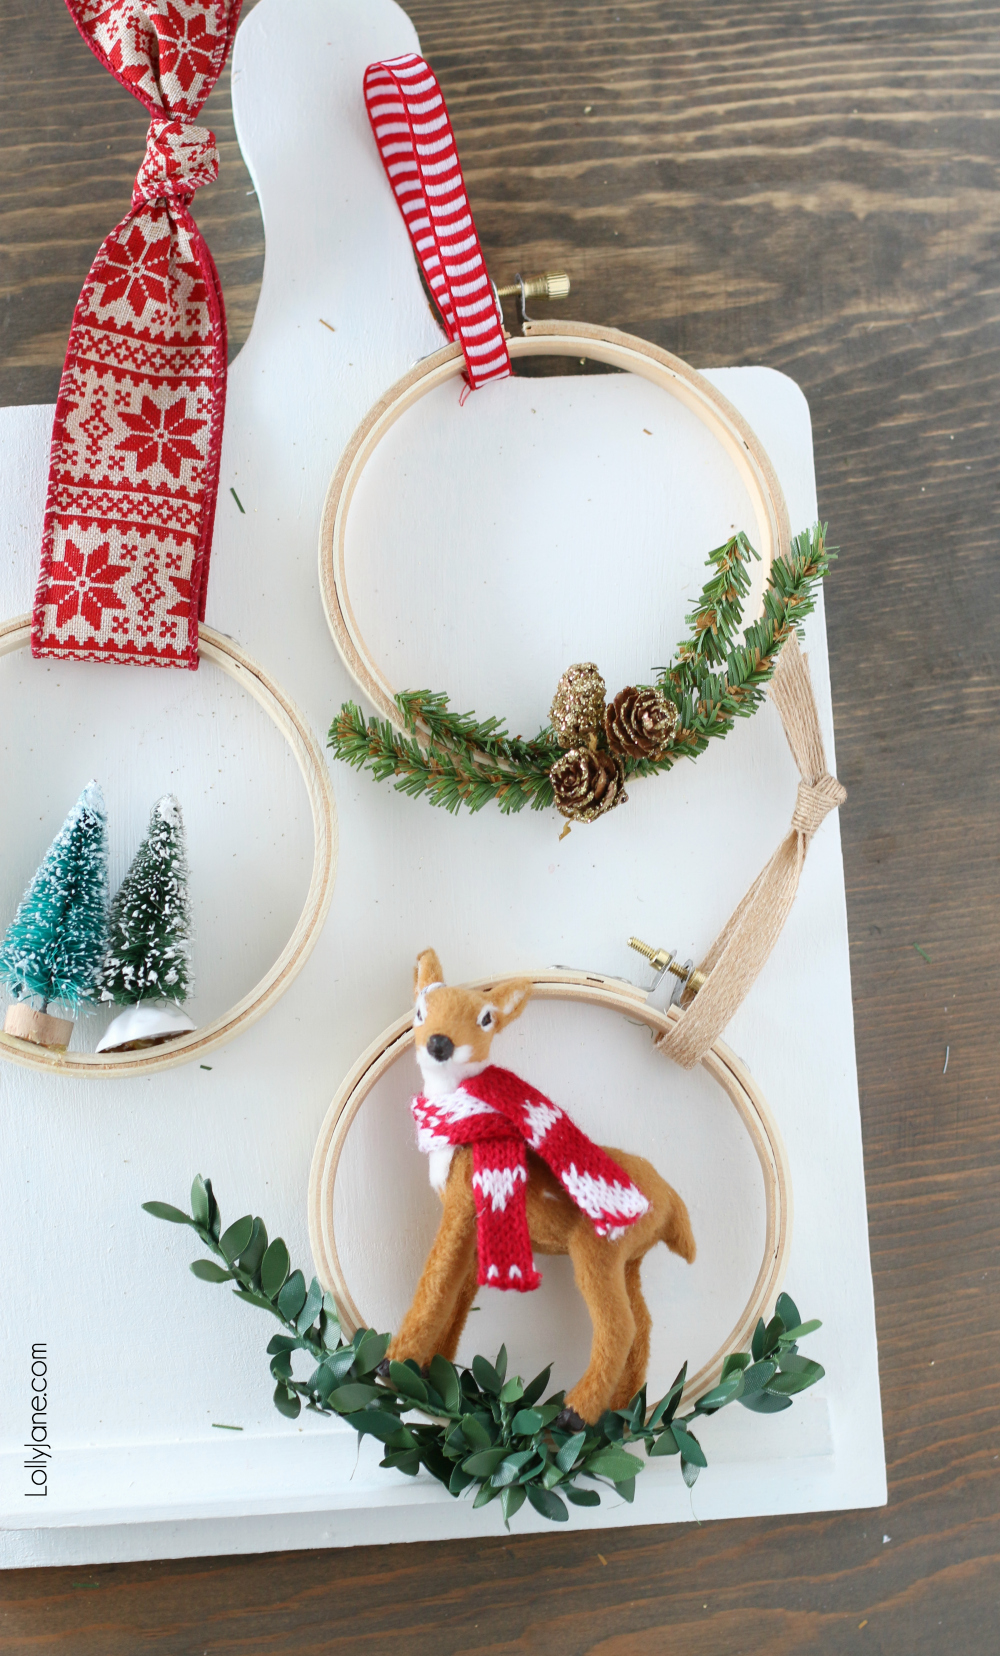 Get your craft on and Make these SUPER EASY and cute DIY Embroidery Hoop Christmas Ornaments! #diy #diyornaments #christmasornaments #christmasdecorations